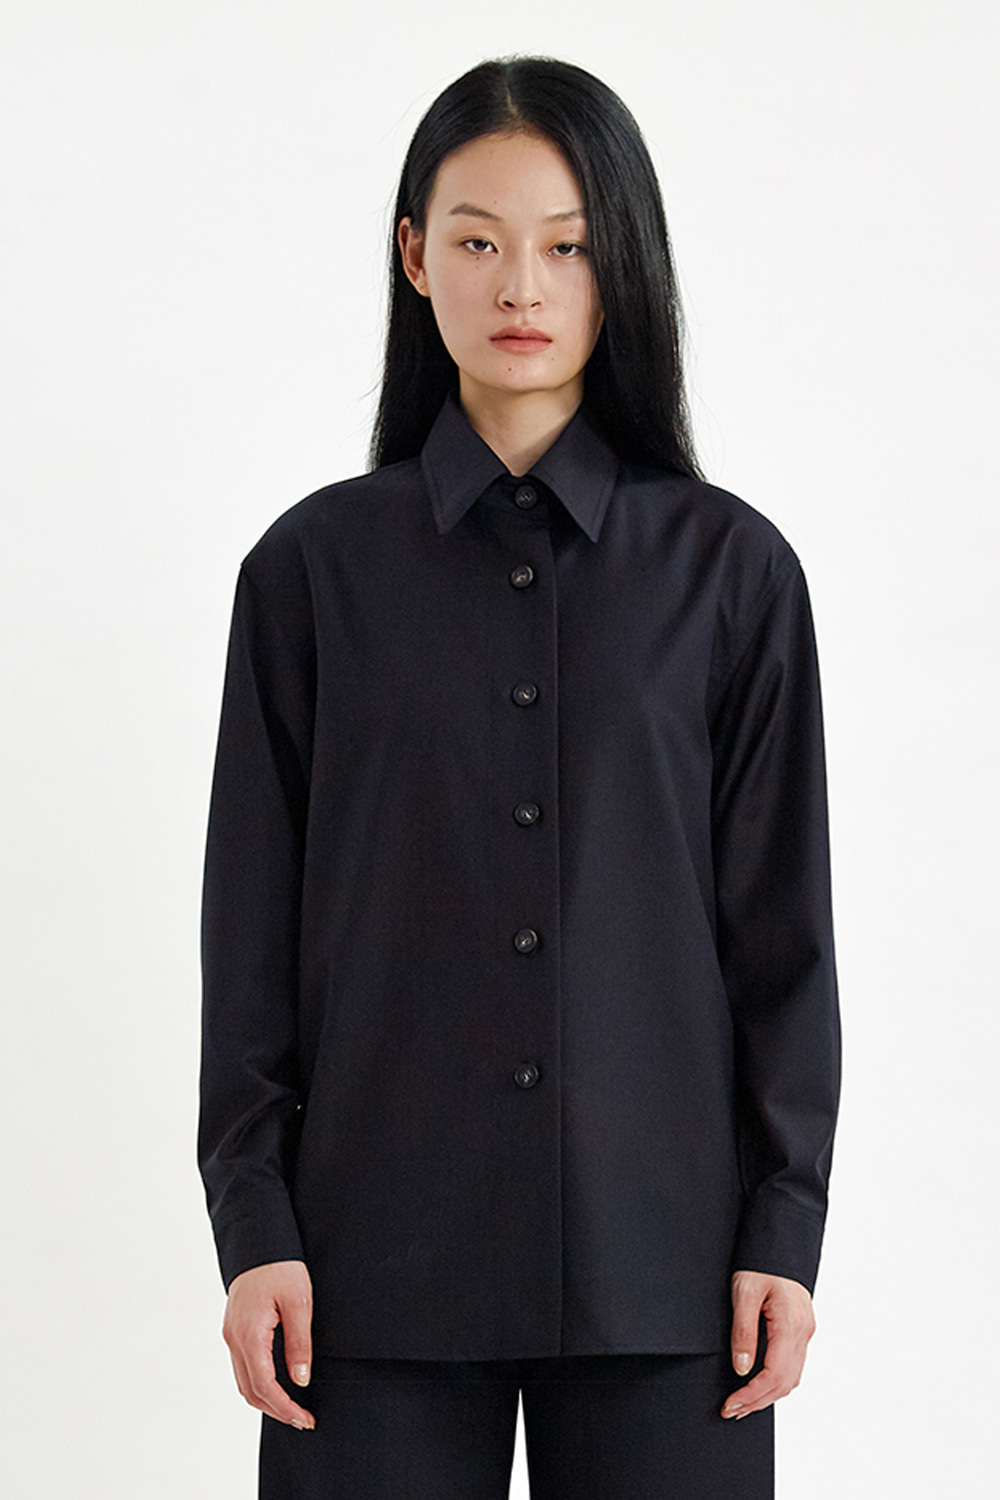 Over Shirts Women JA [Dark Navy] -10%